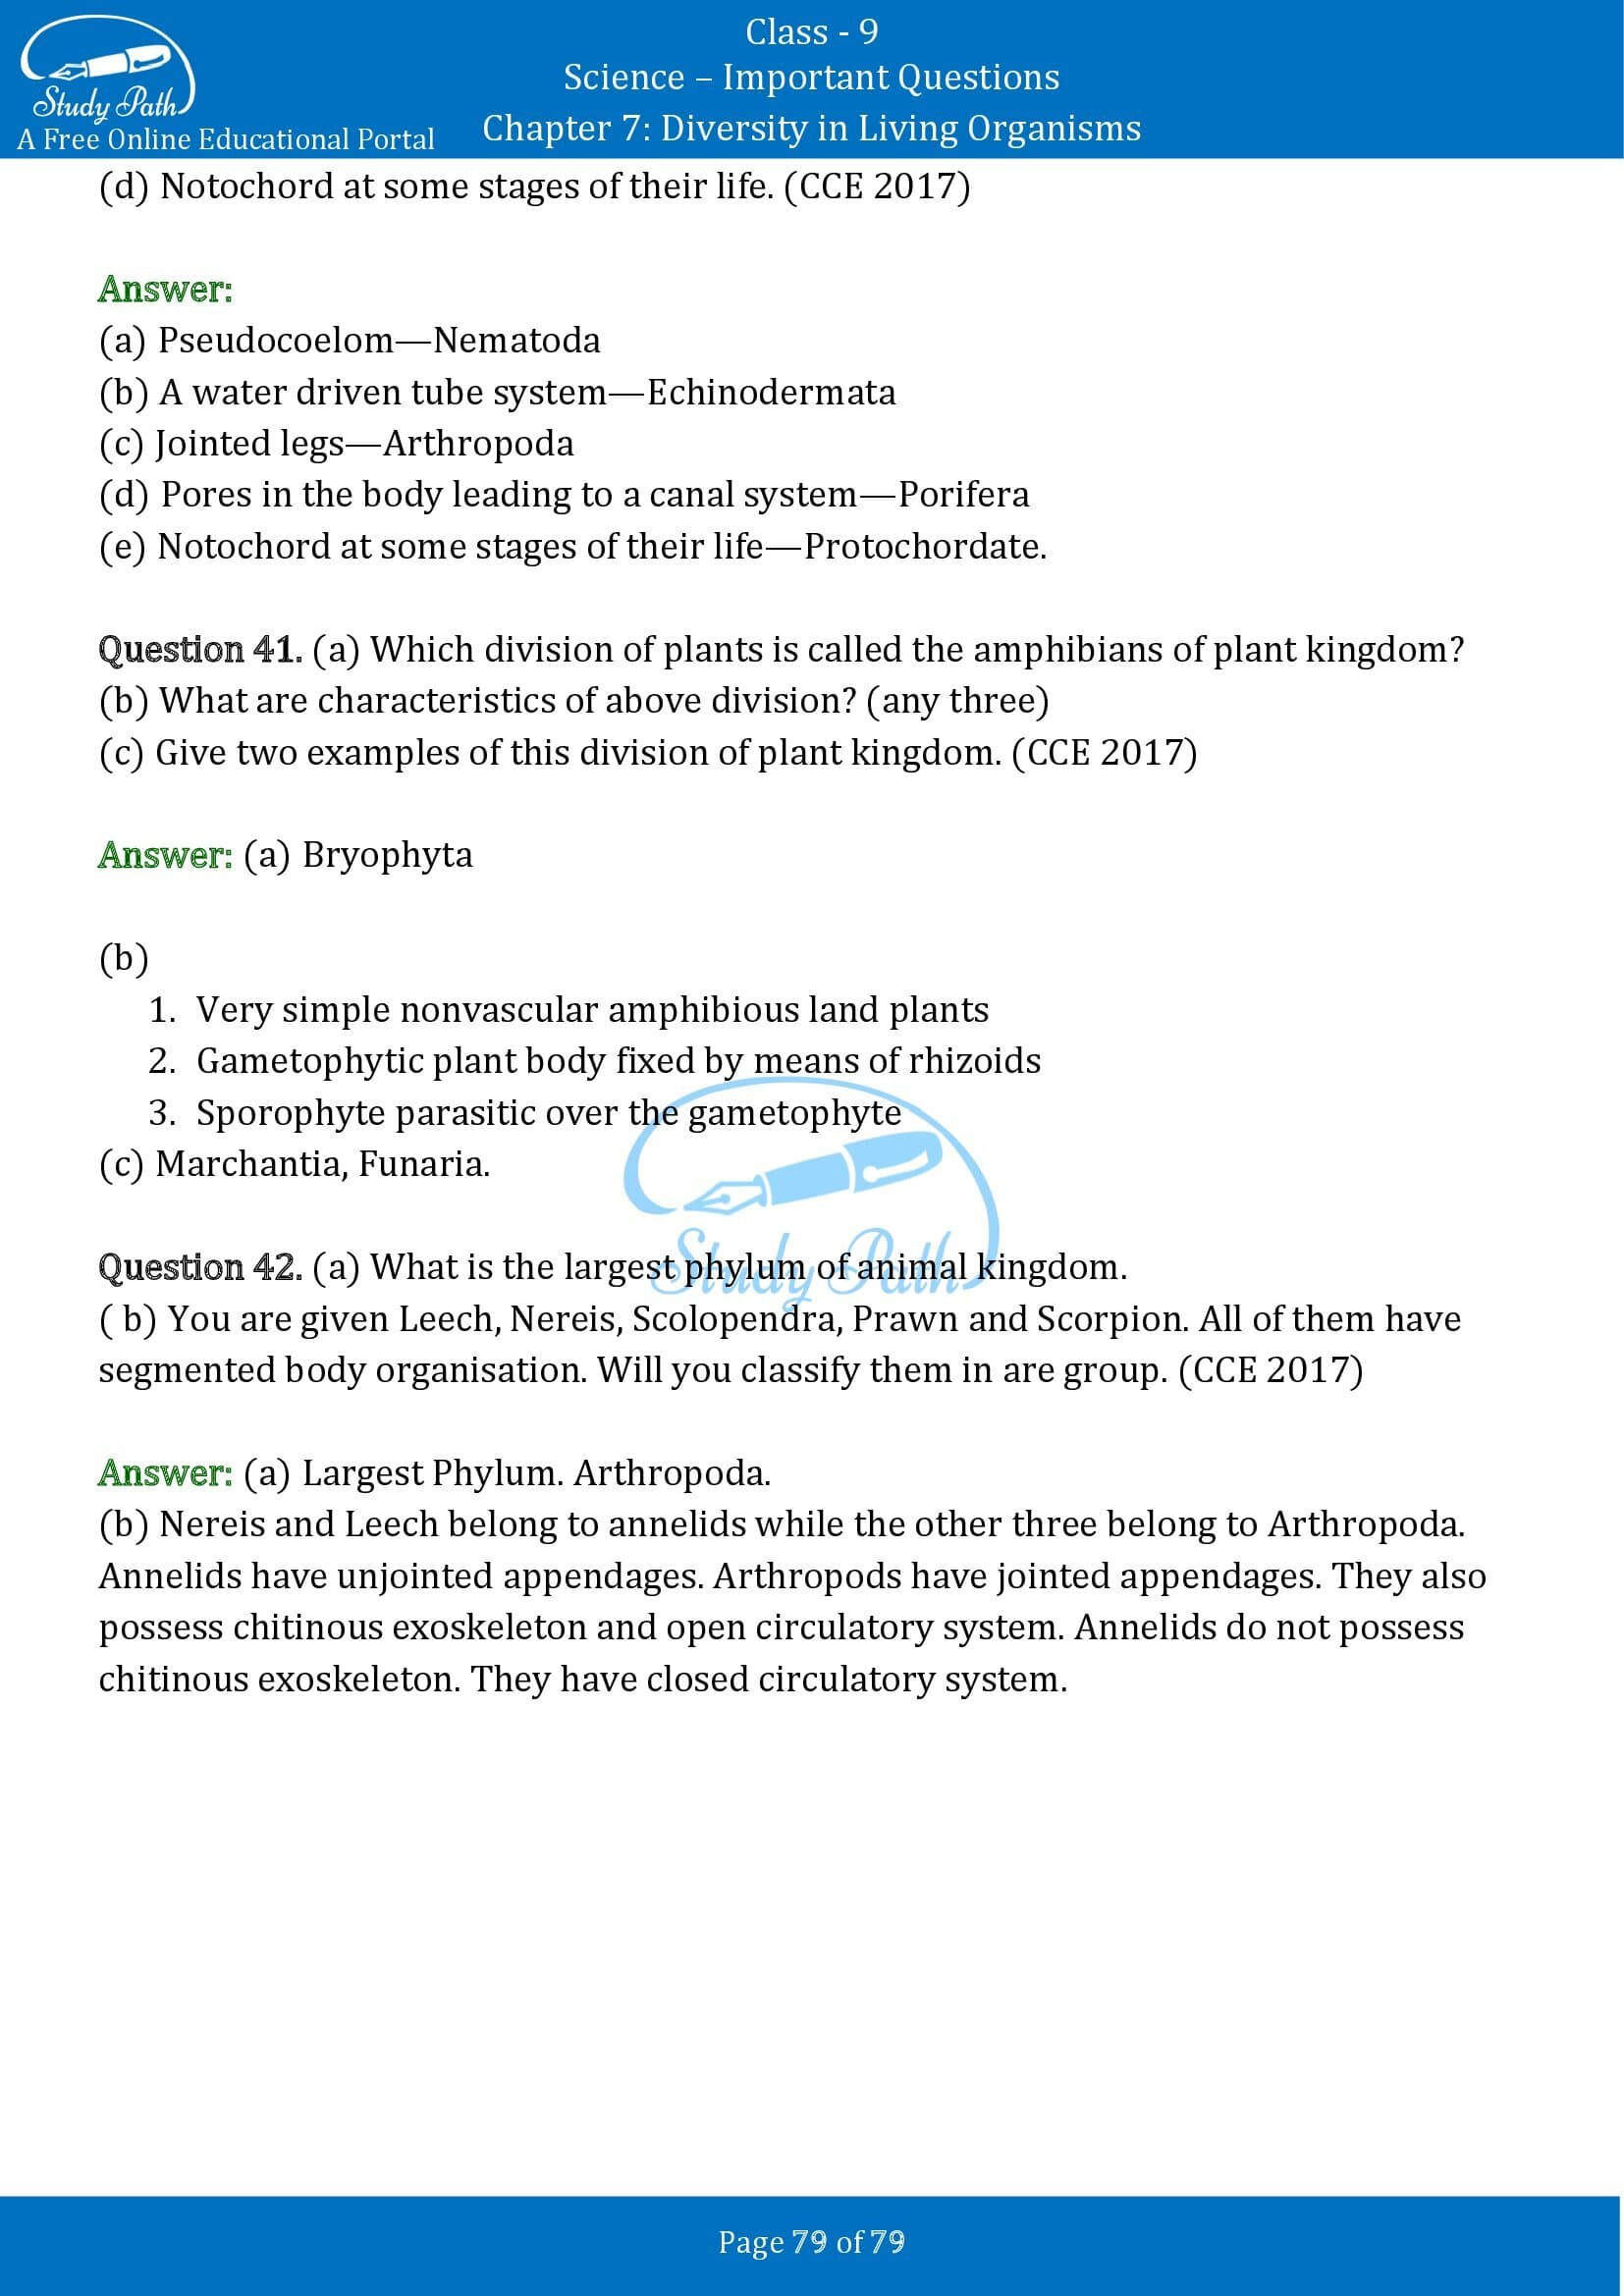 Important Questions for Class 9 Science Chapter 7 Diversity in Living Organisms 00079